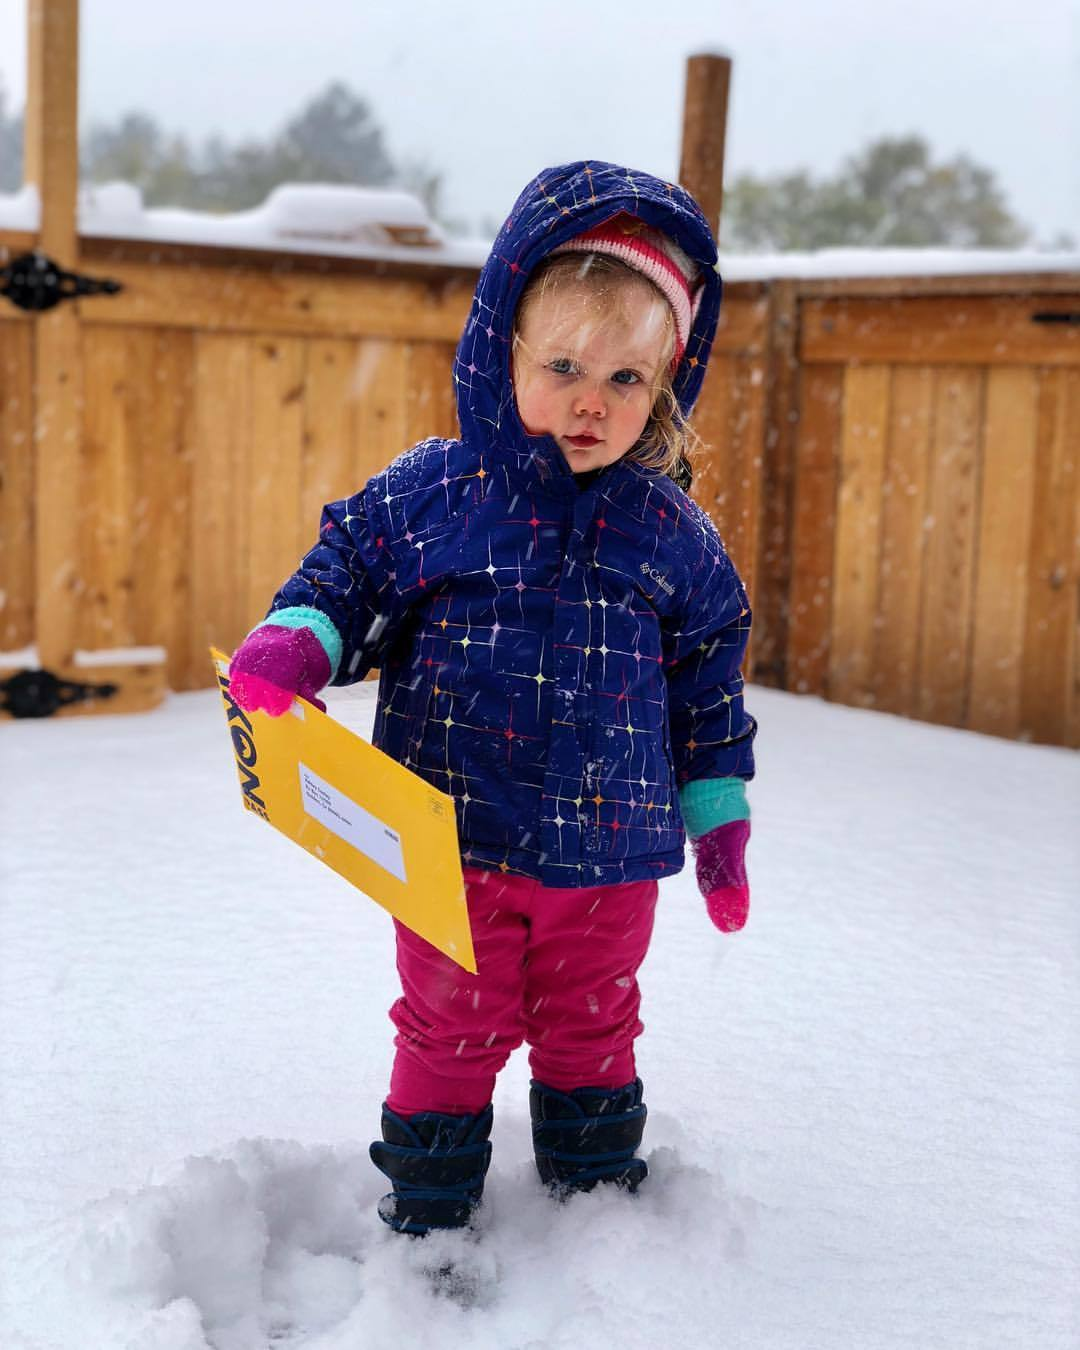 SNOW … LJ doesn't have any idea what is about to happen this year :) (at Hydle's)https://www.instagram.com/p/Bo66zA6H5X0/?utm_source=ig_tumblr_share&igshid=1bw62oa0rnjnt